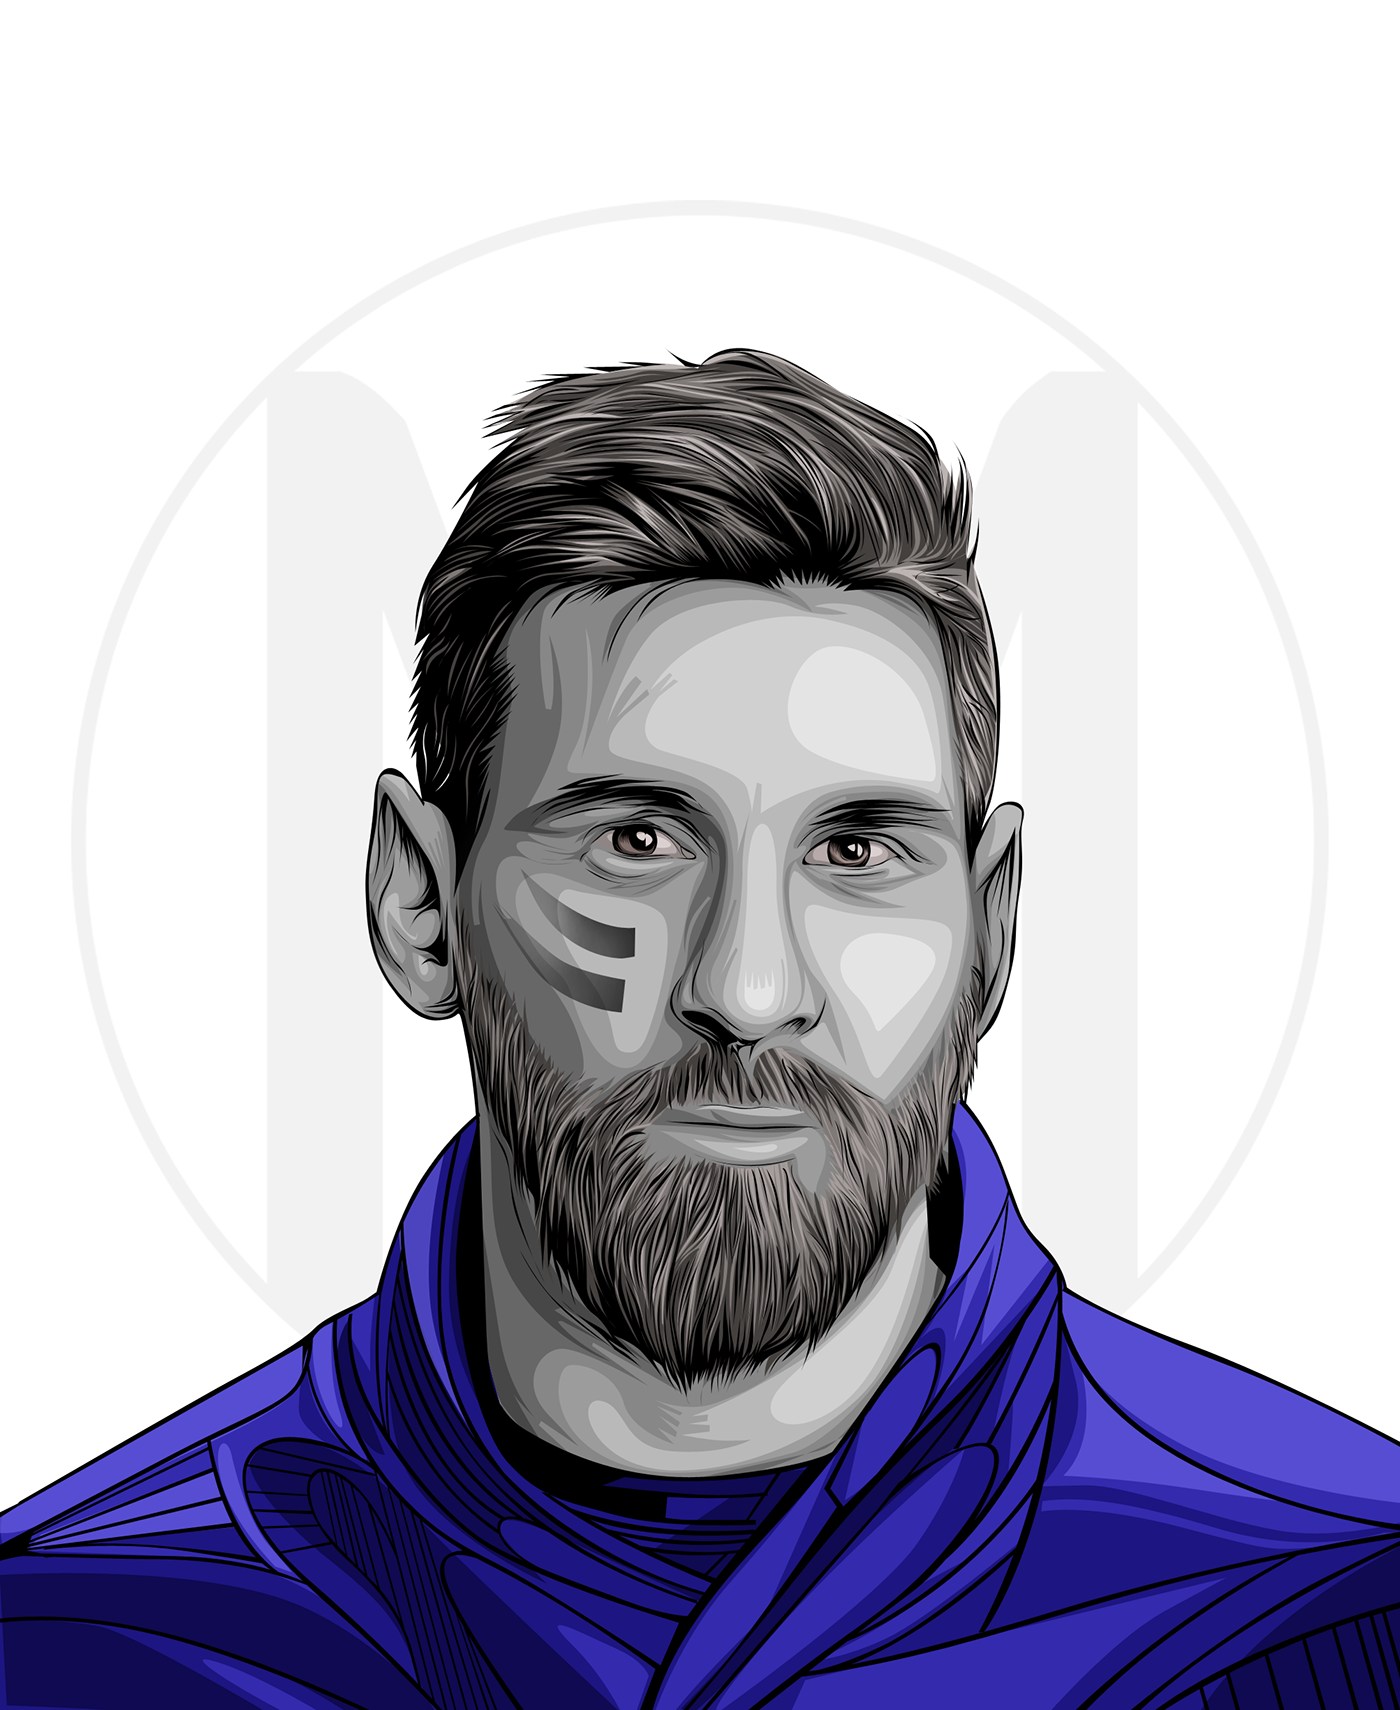 Drawing messi shooting. On behance thank you